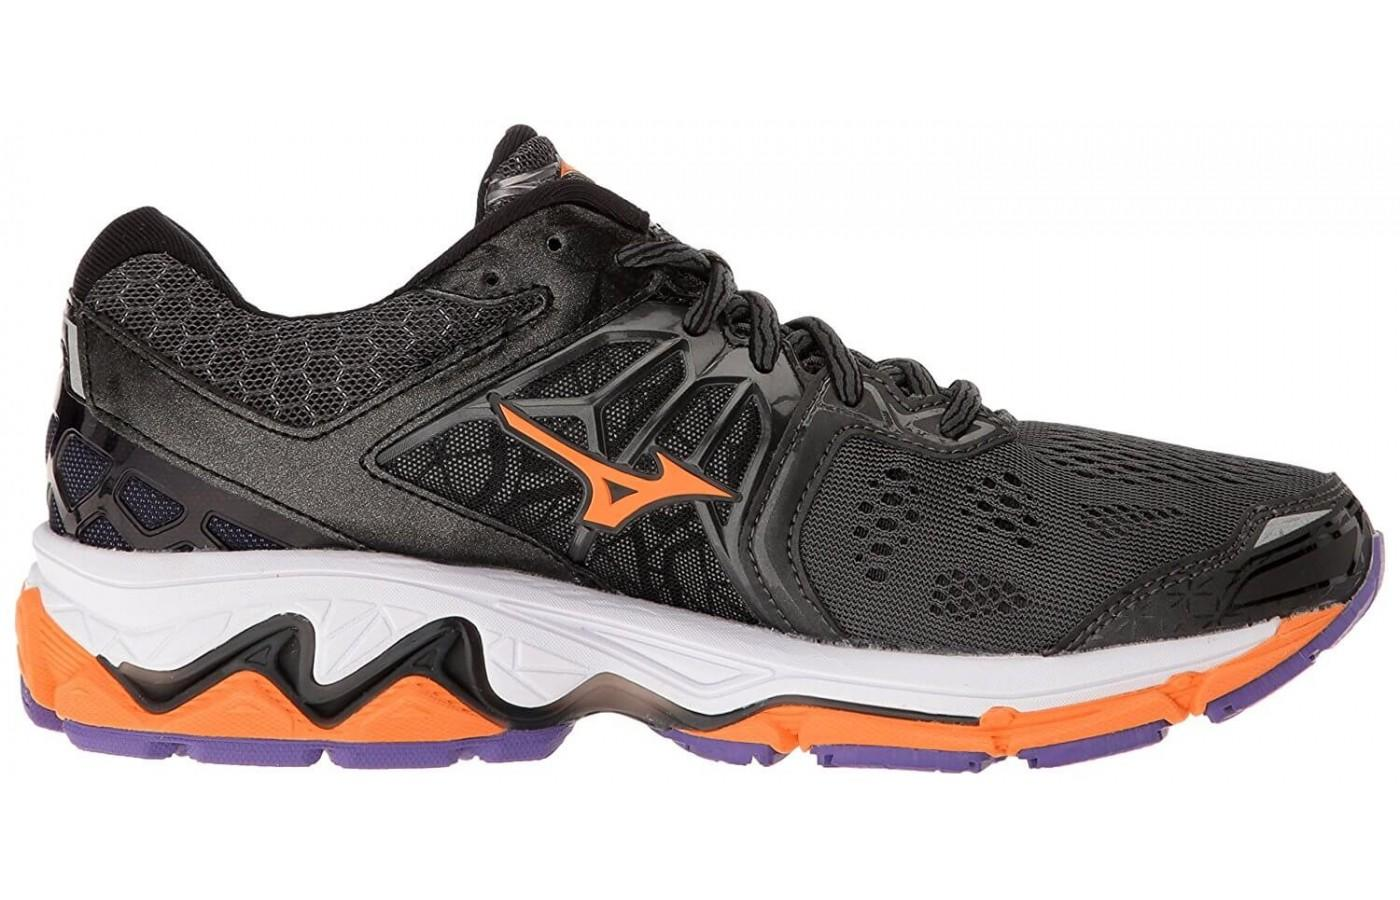 The Mizuno Wave Horizon has a Redesigned Stability Wave for better cushioning and responsiveness